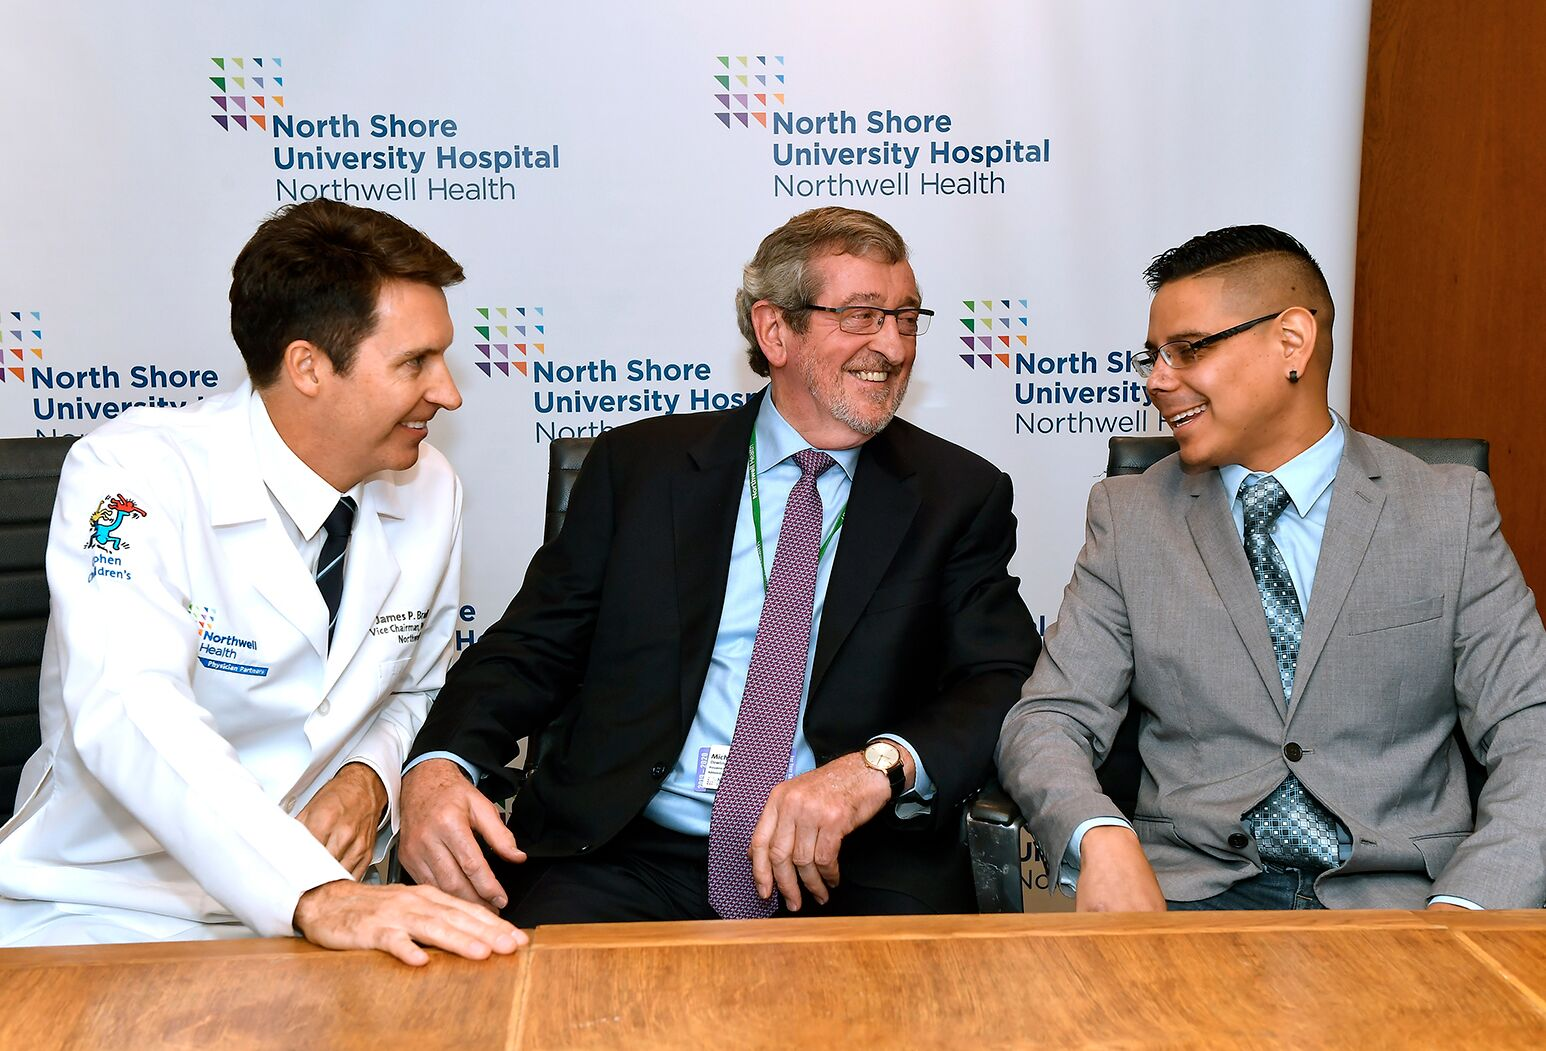 Luis Rios (right) and James Bradley, MD, talk with Michael Dowling during a press conference.